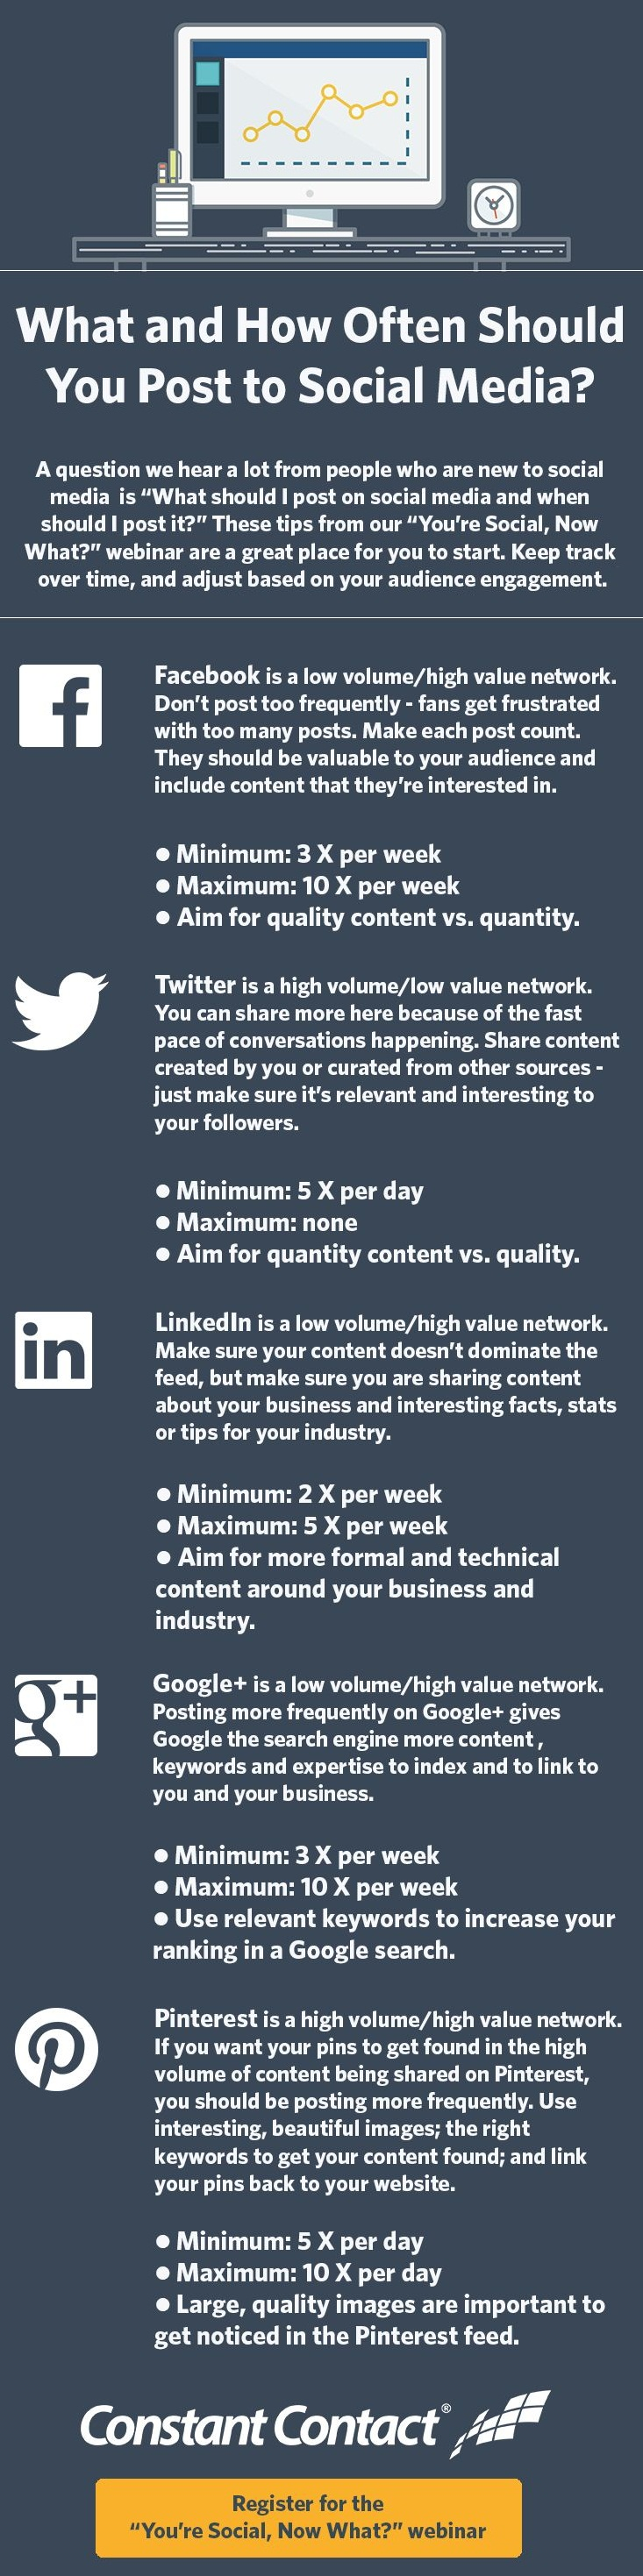 How Often Should You Post to Facebook, Twitter, Pinterest, Google+ - Social Media #infographic